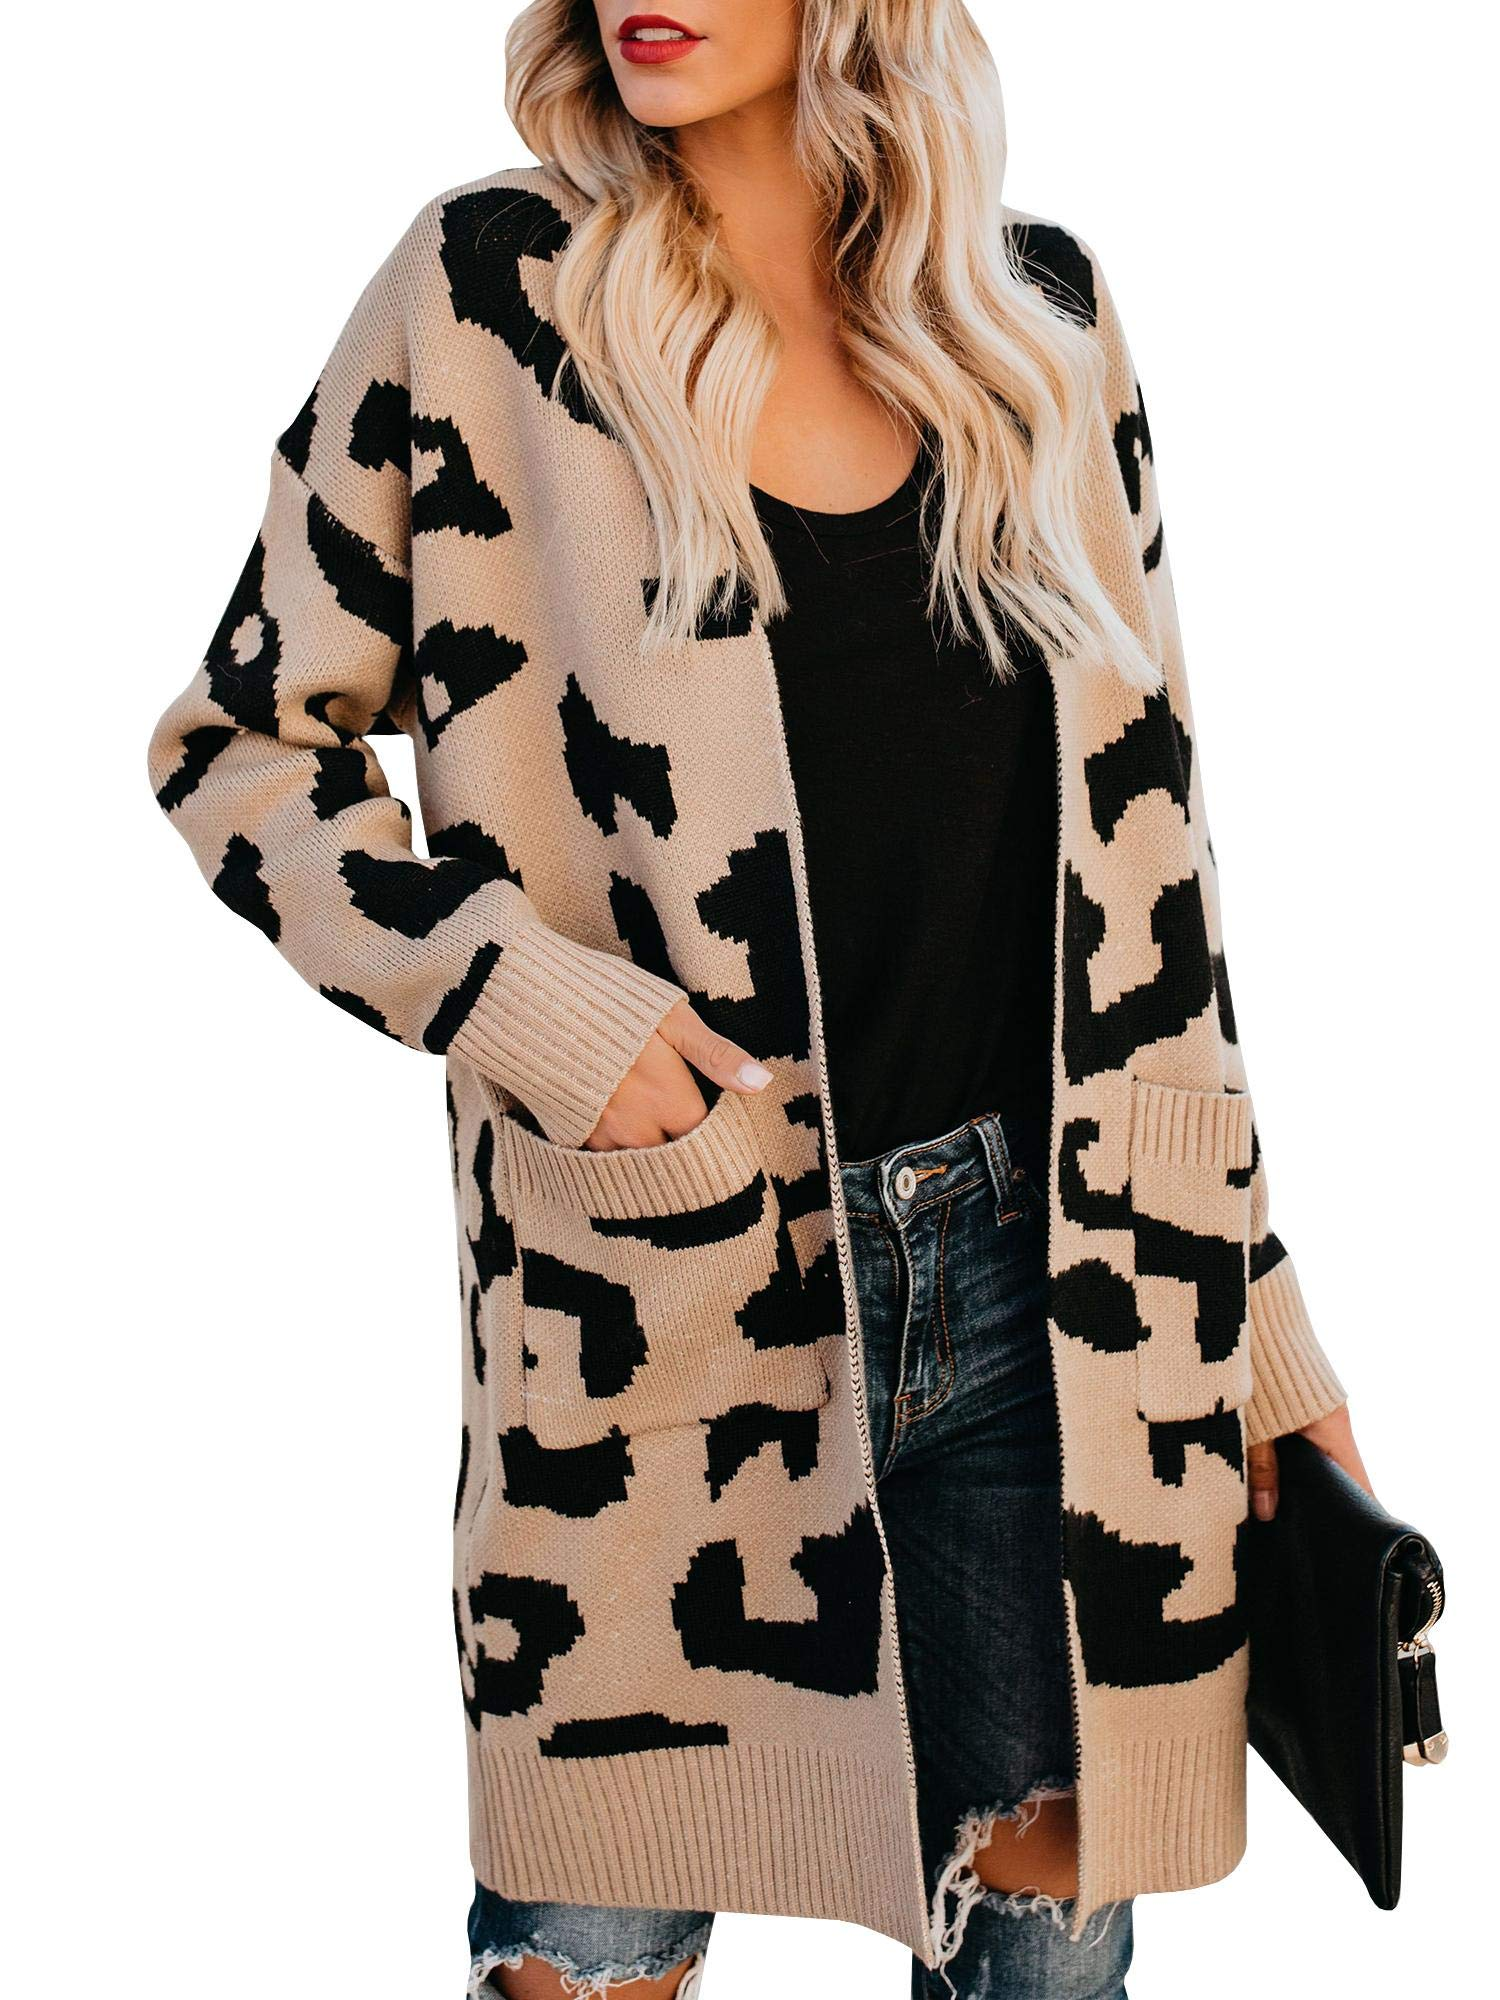 Soulomelody Msikiver Womens Fuzzy Leopard Print Cardigan Sweater Open Front Draped Duster Loose Knit Jacket with Pockets